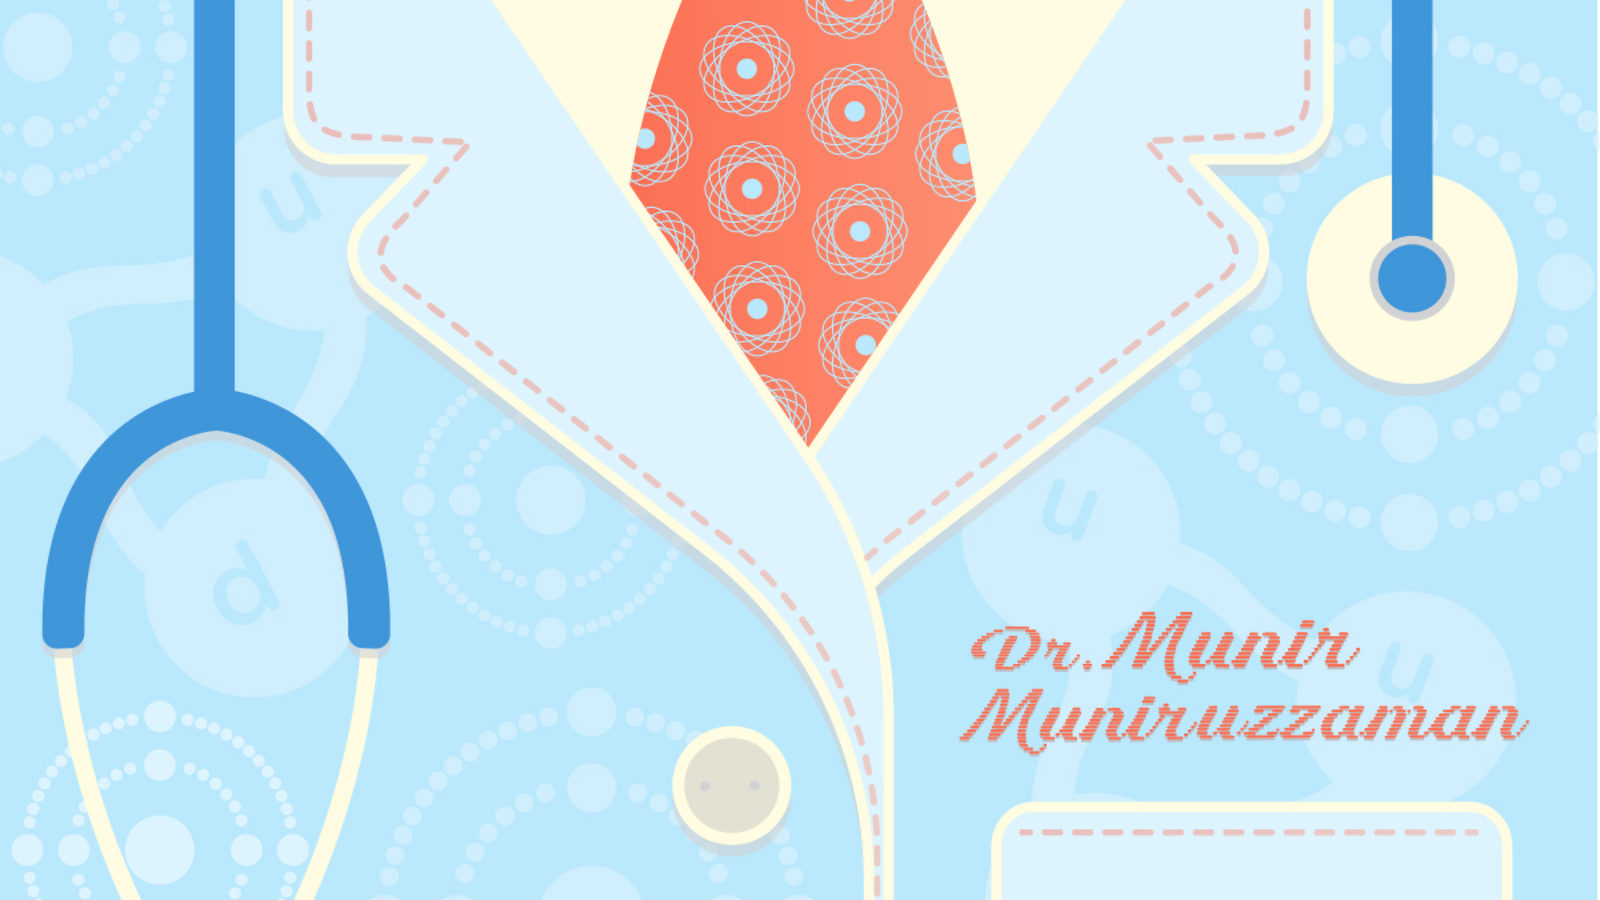 Illustration of Munir Muniruzzaman's chest in doctors coat, tie, and stethoscope